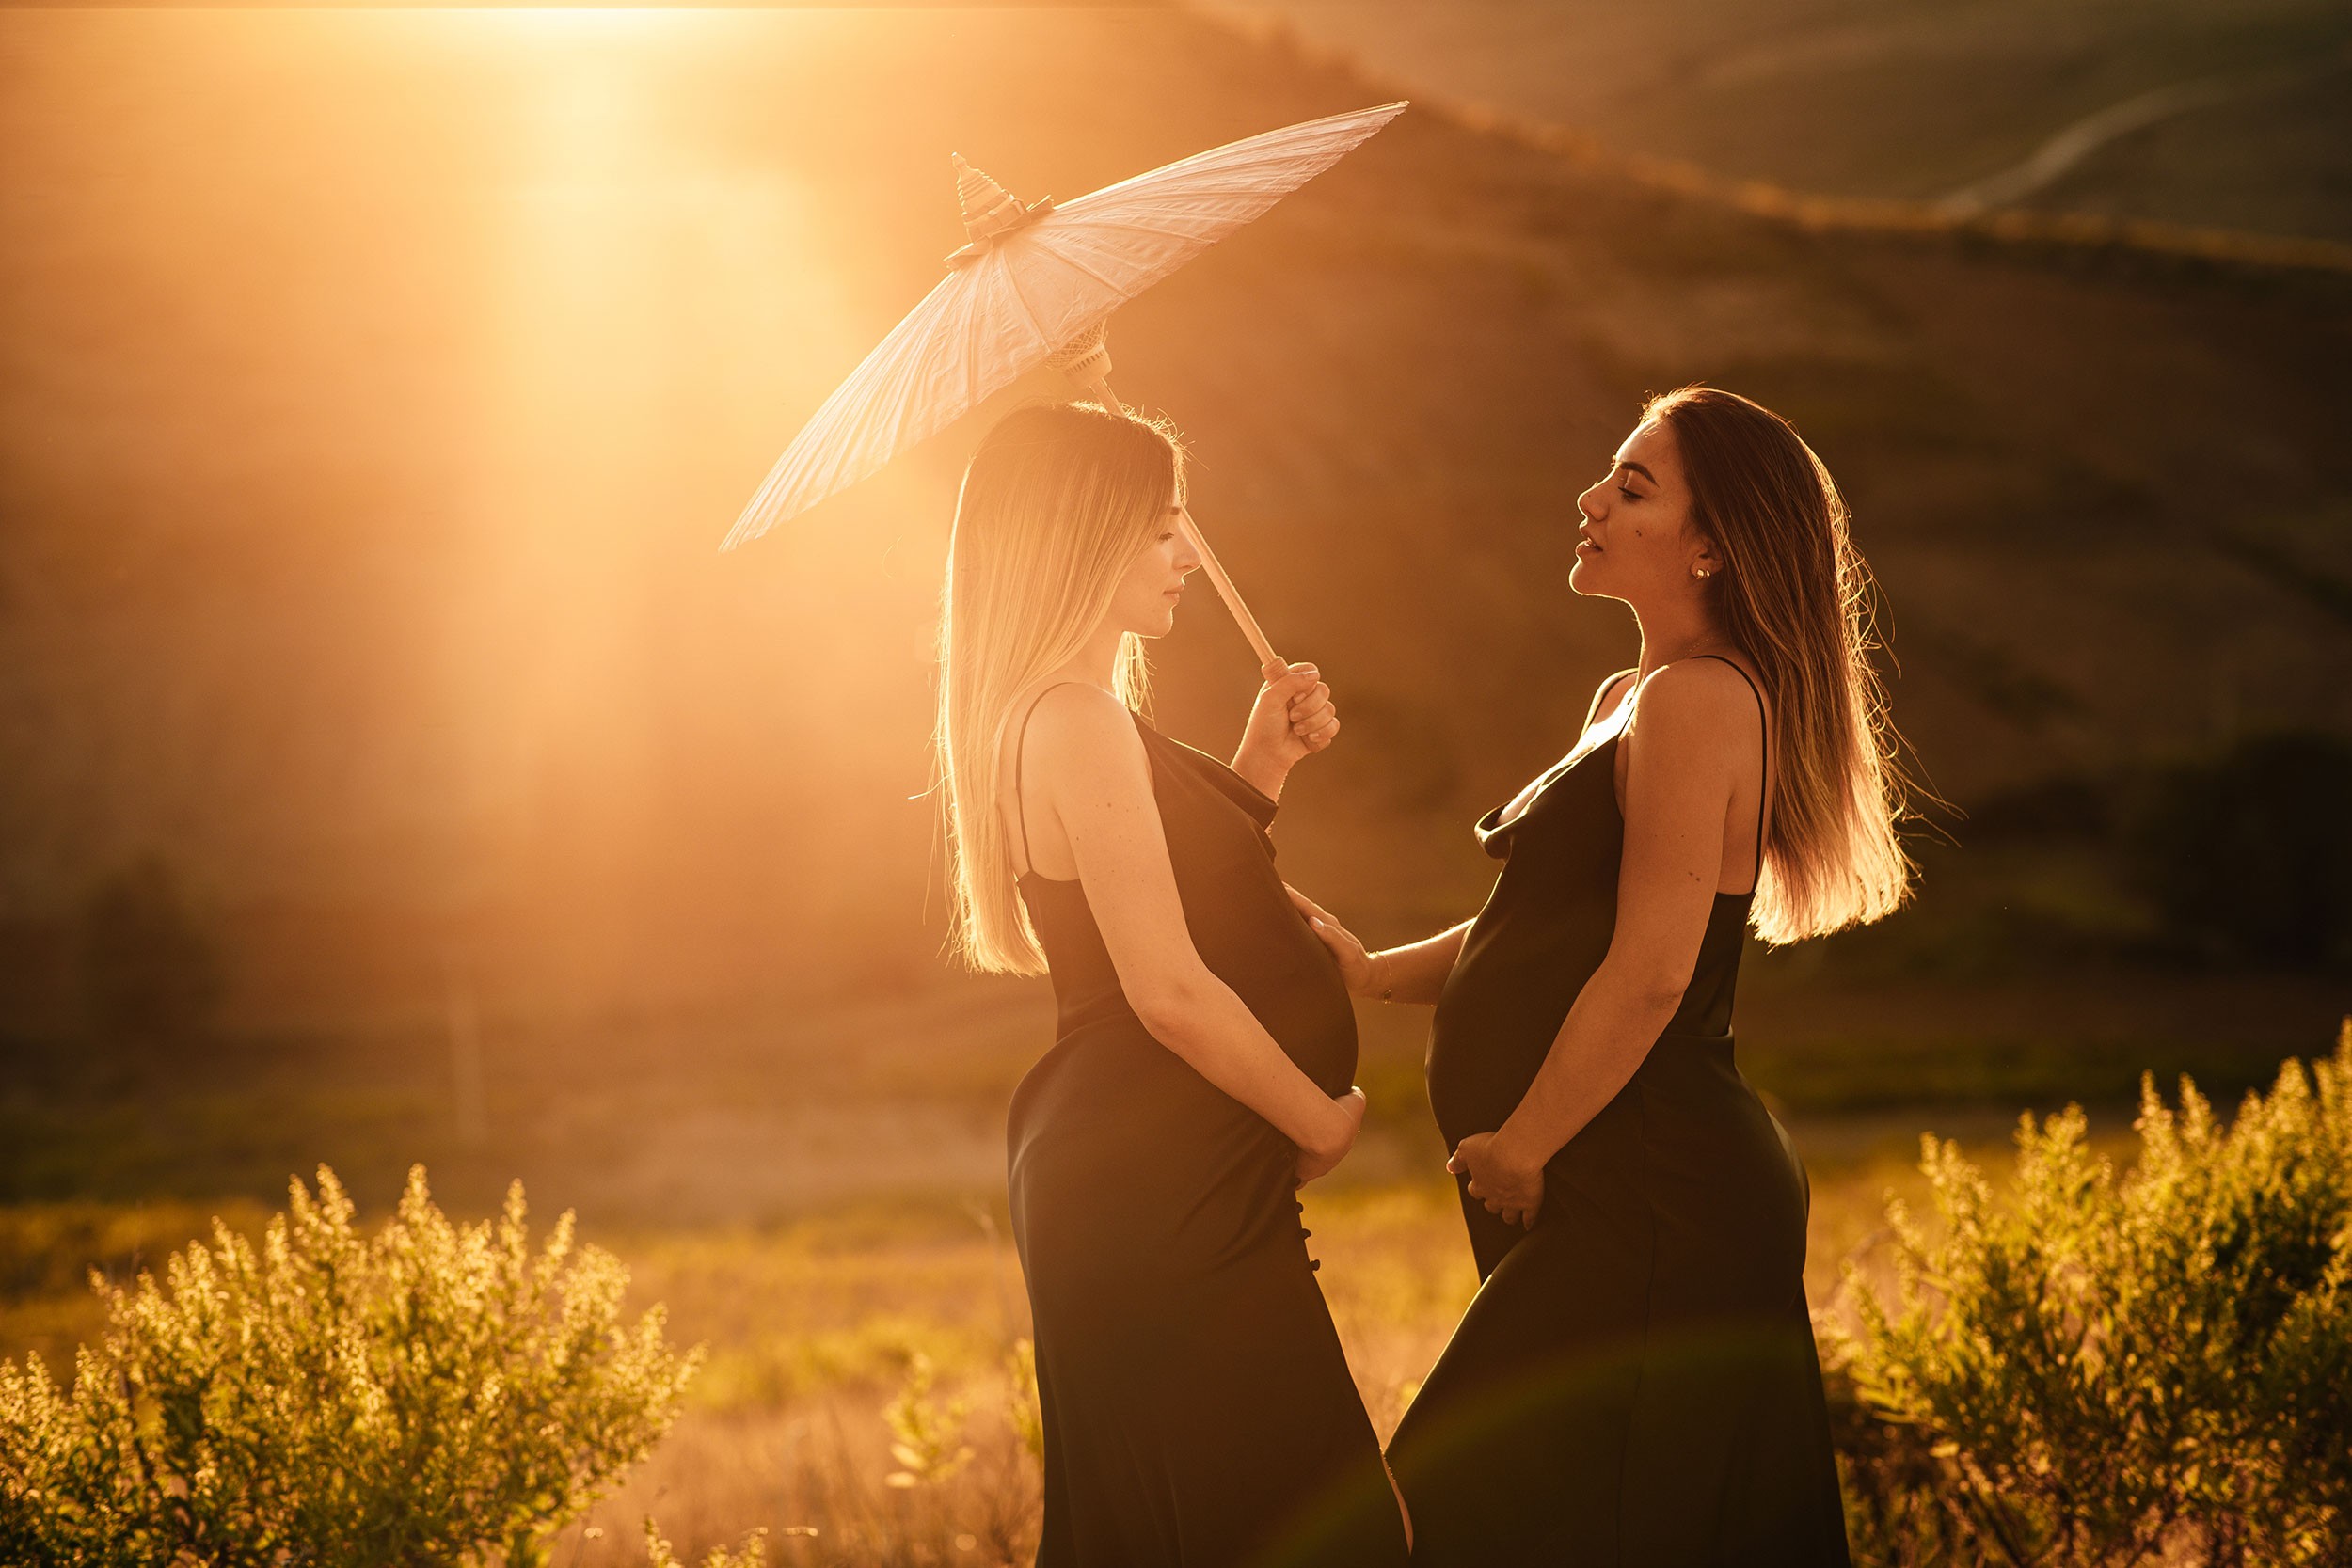 Two pregnant girls posing with an umbrella in nature